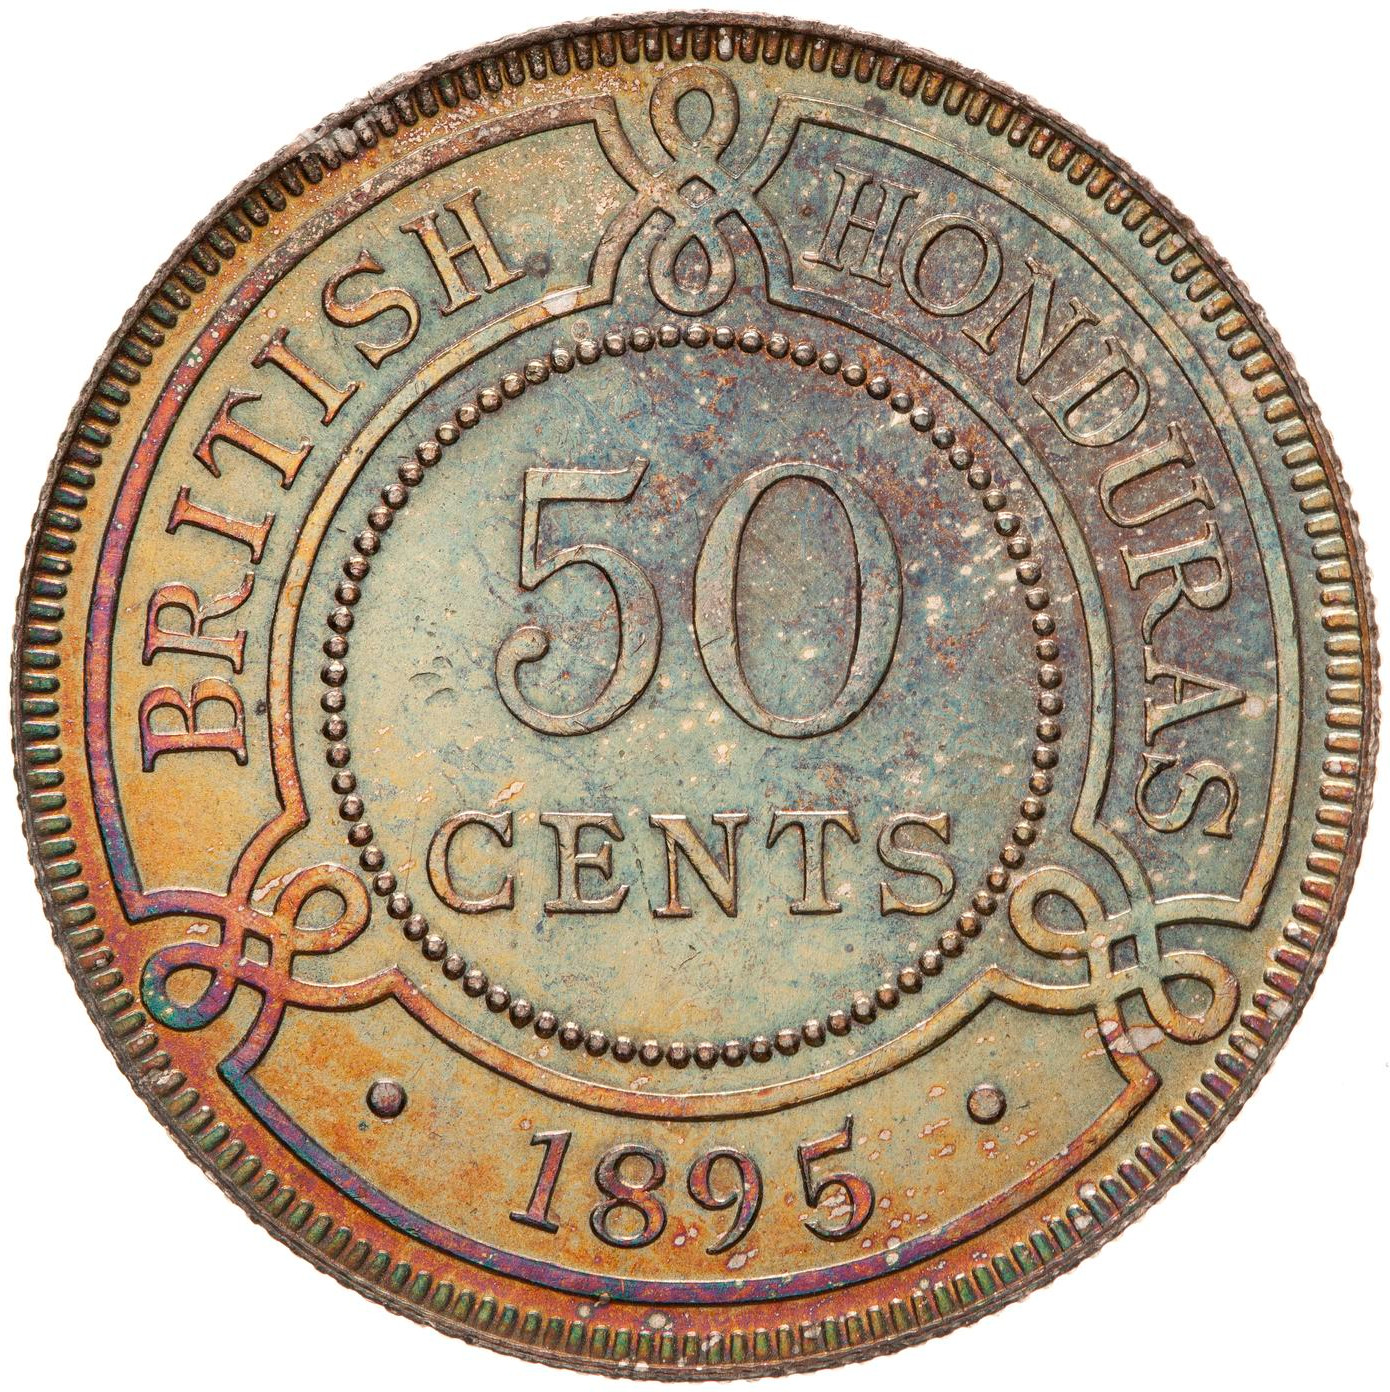 Fifty Cents: Photo Coin - 50 Cents, British Honduras (Belize), 1895